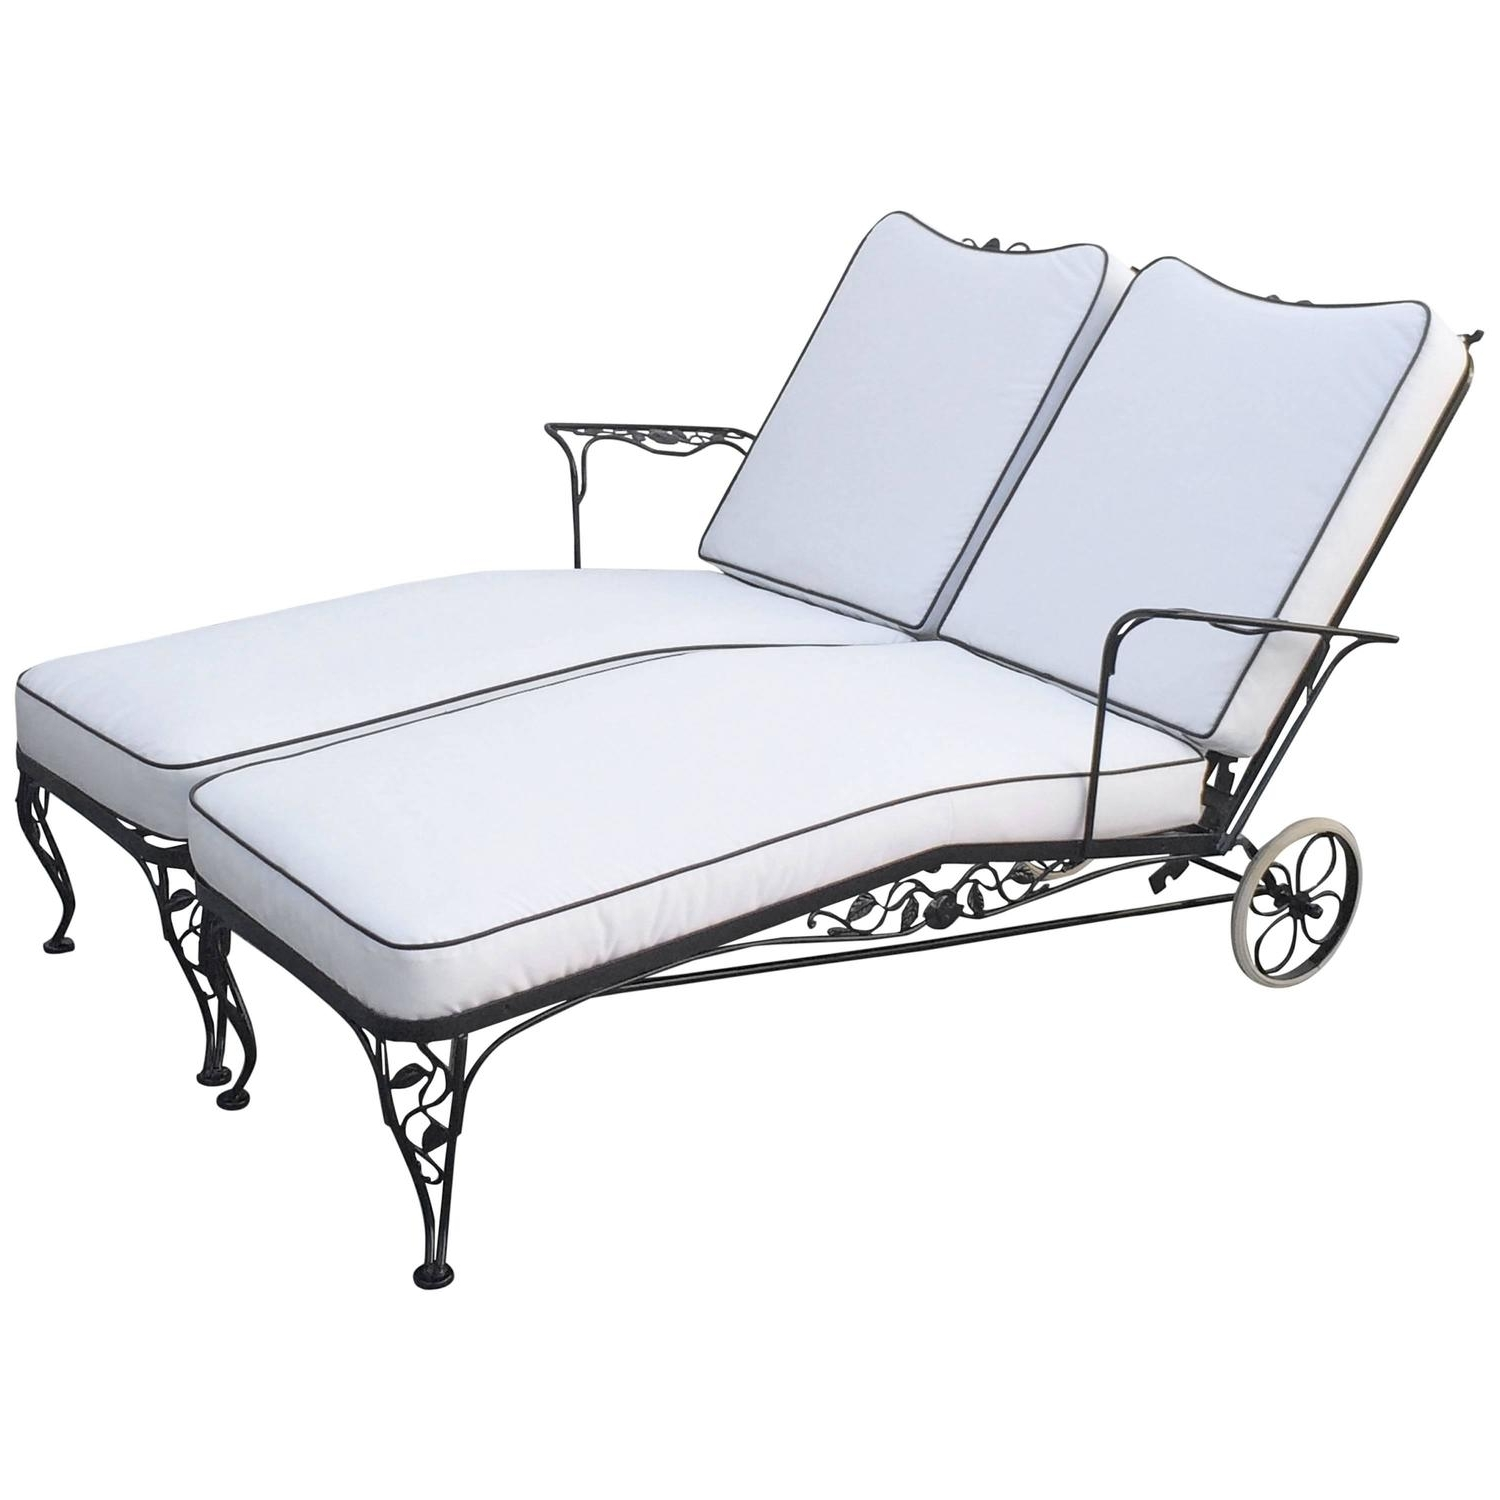 How Sturdy The Awesome Designs Wrought Iron Chaise Lounge Pertaining To Well Known Wrought Iron Chaise Lounges (View 12 of 15)